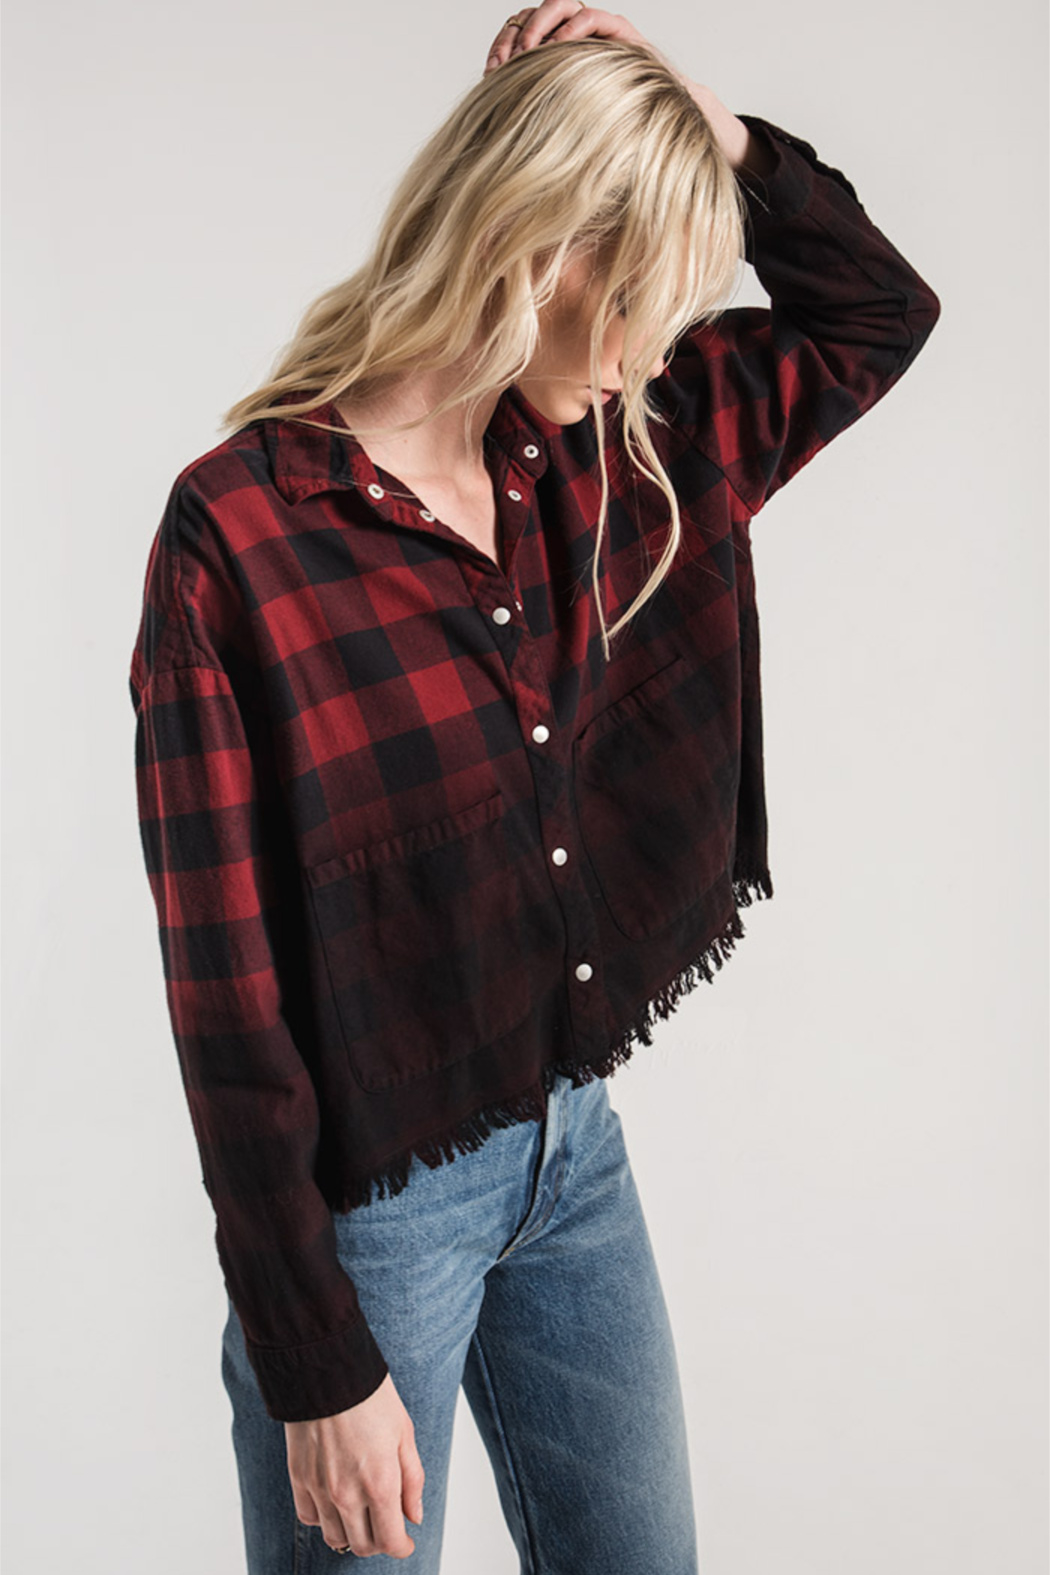 White Crow Benson Flannel Crop Top/Jacket - Main Image